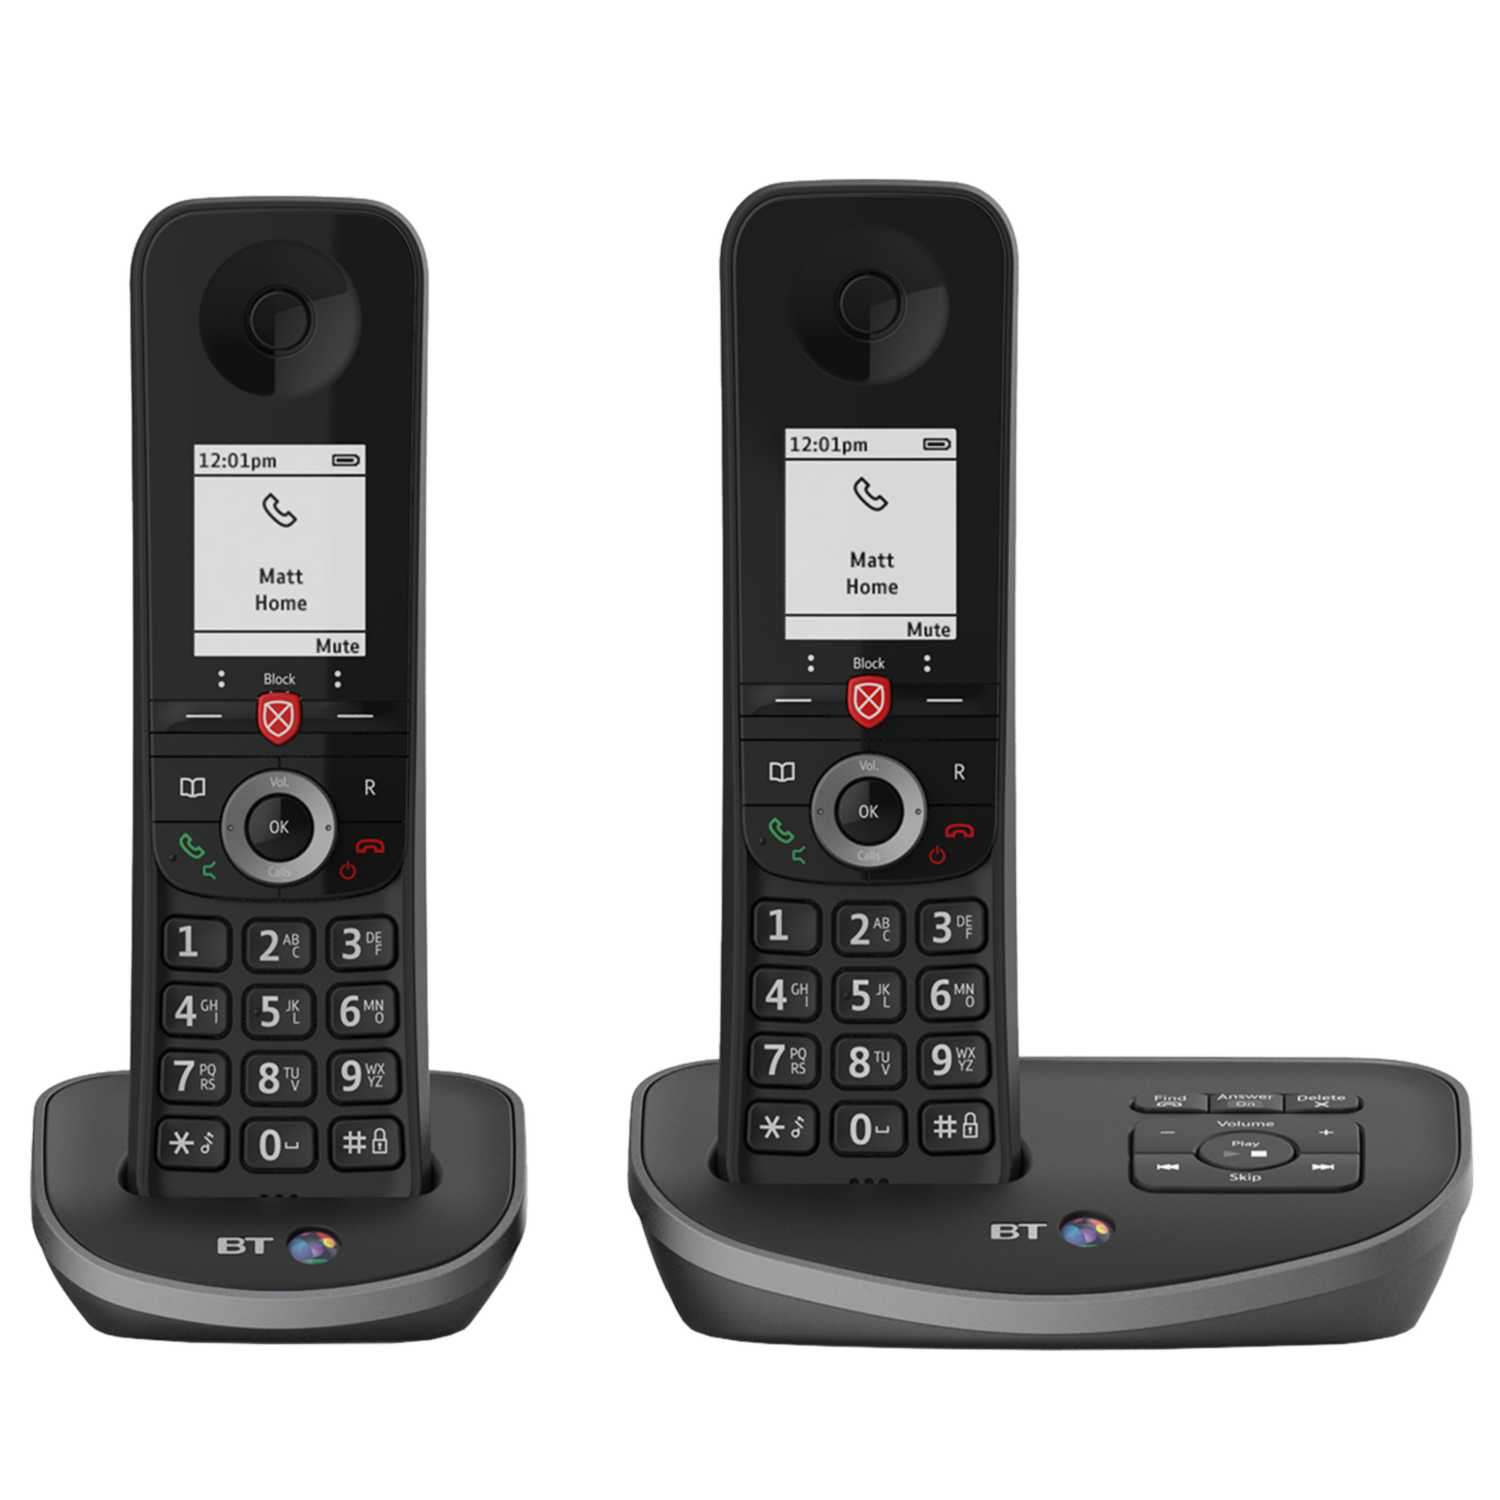 BT Advanced Twin Phone Answermachine & Nuisance Call Block